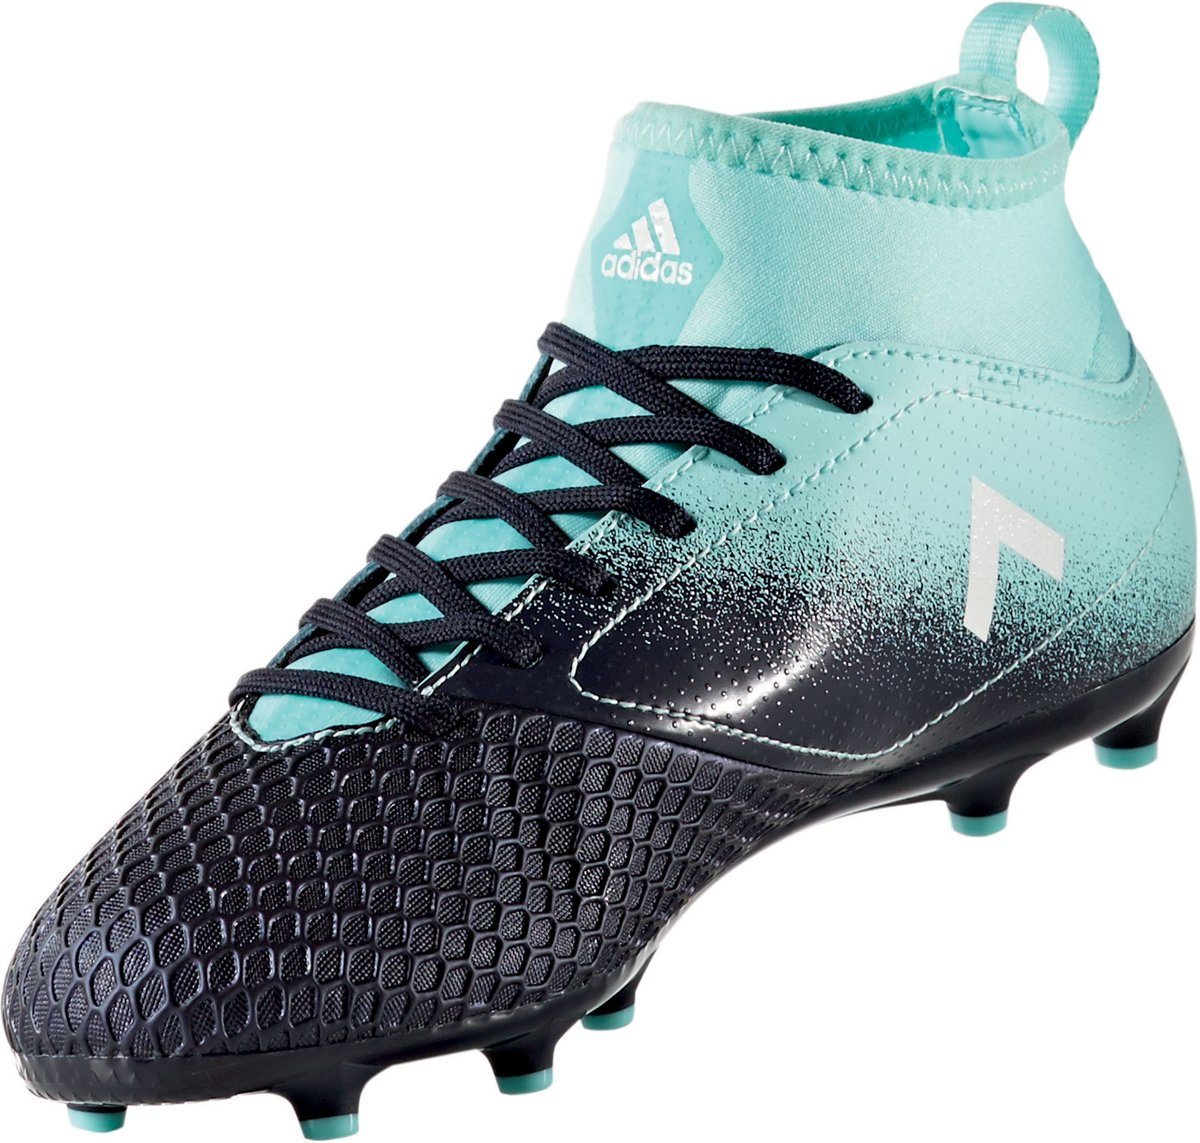 Adidas - Ace 17.1 Fg Jr Football - Unisexe - Chaussures - Blanc - 35,5